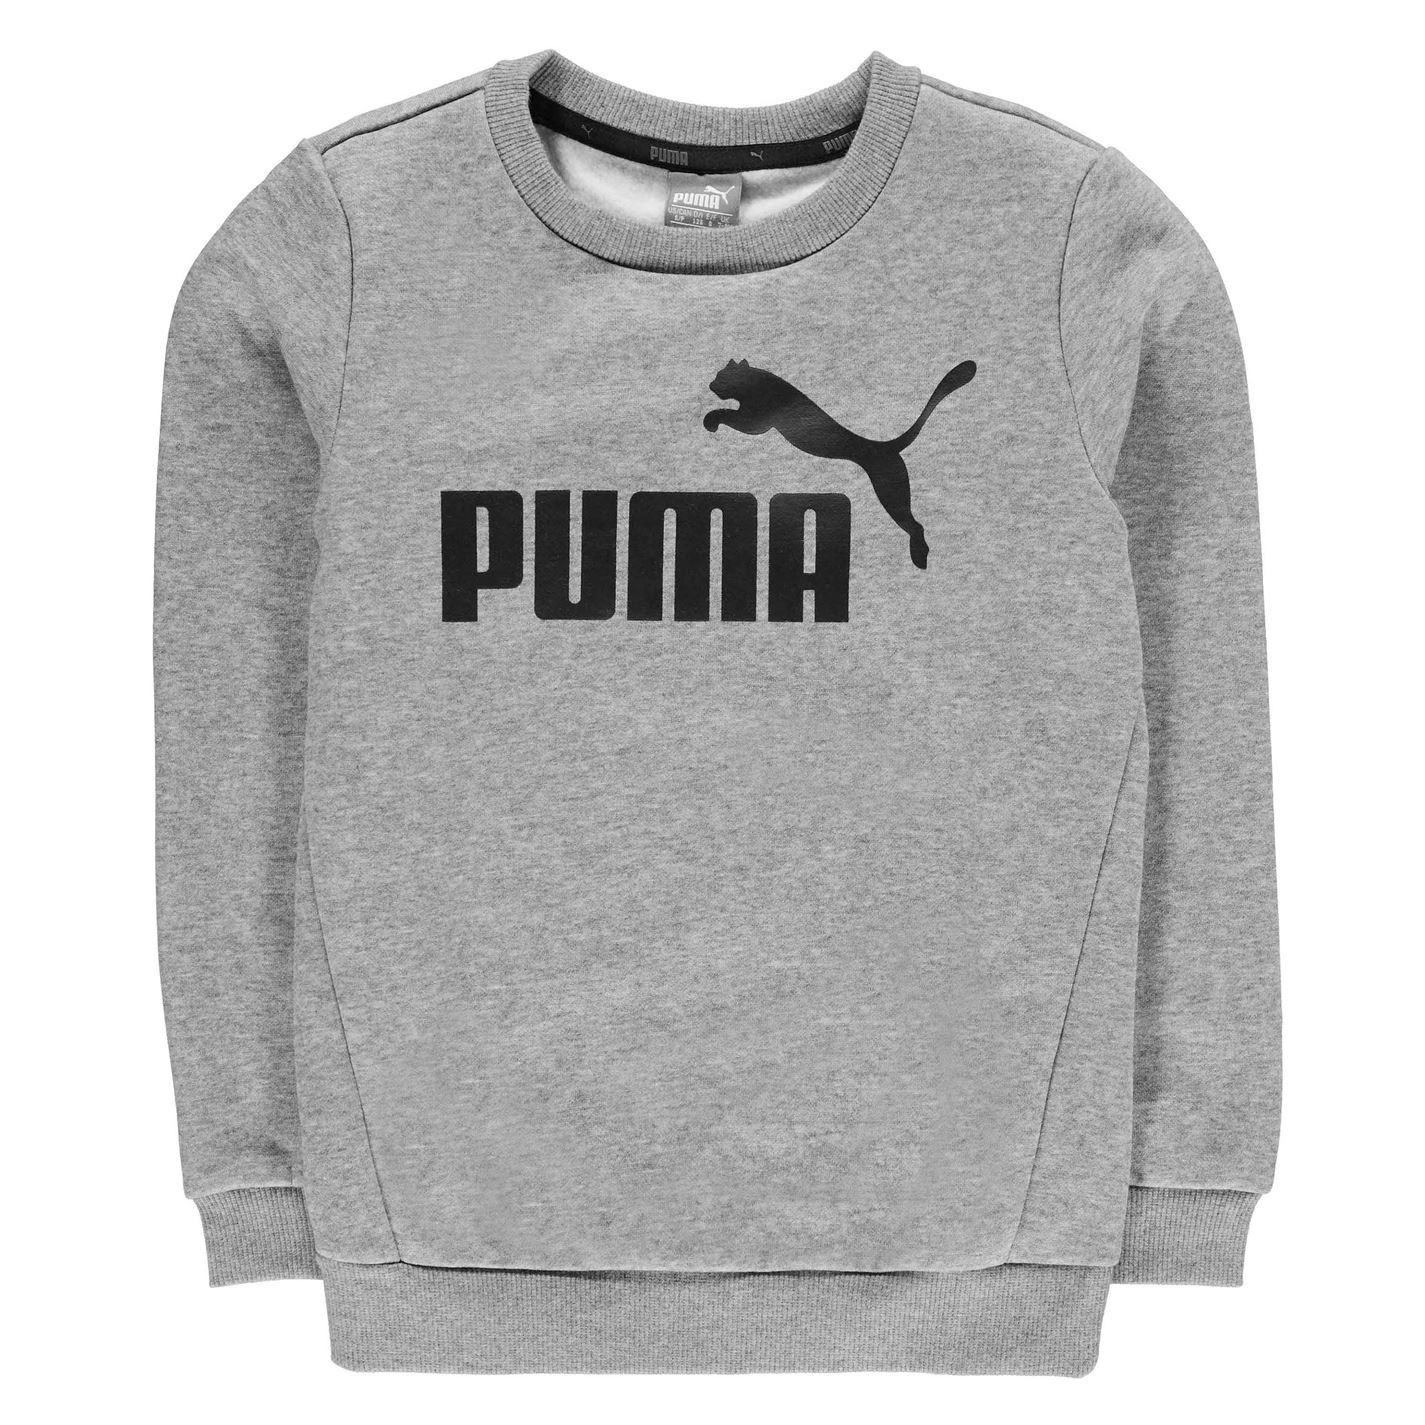 4e4fdc560 Details about Puma Kids No1 Crew Sweat Juniors Sweater Jumper Pullover Long  Sleeve Neck Warm